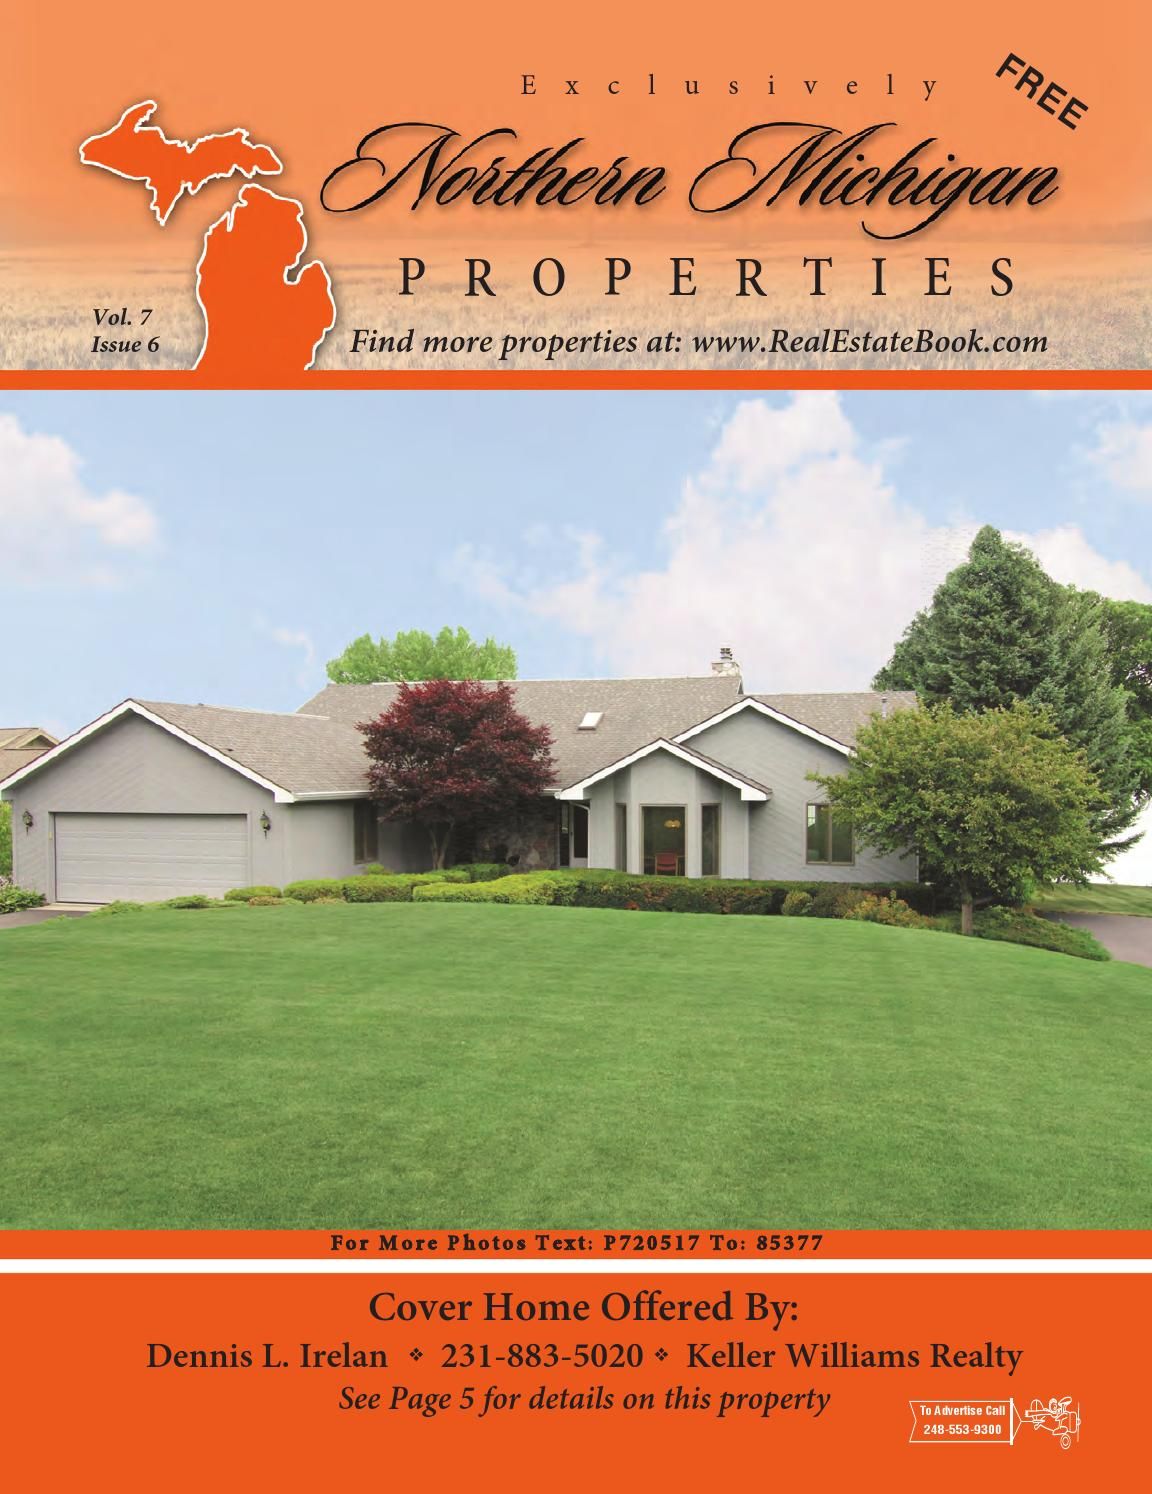 northern michigan properties vol 7 iss 6 by the real estate book rh issuu com